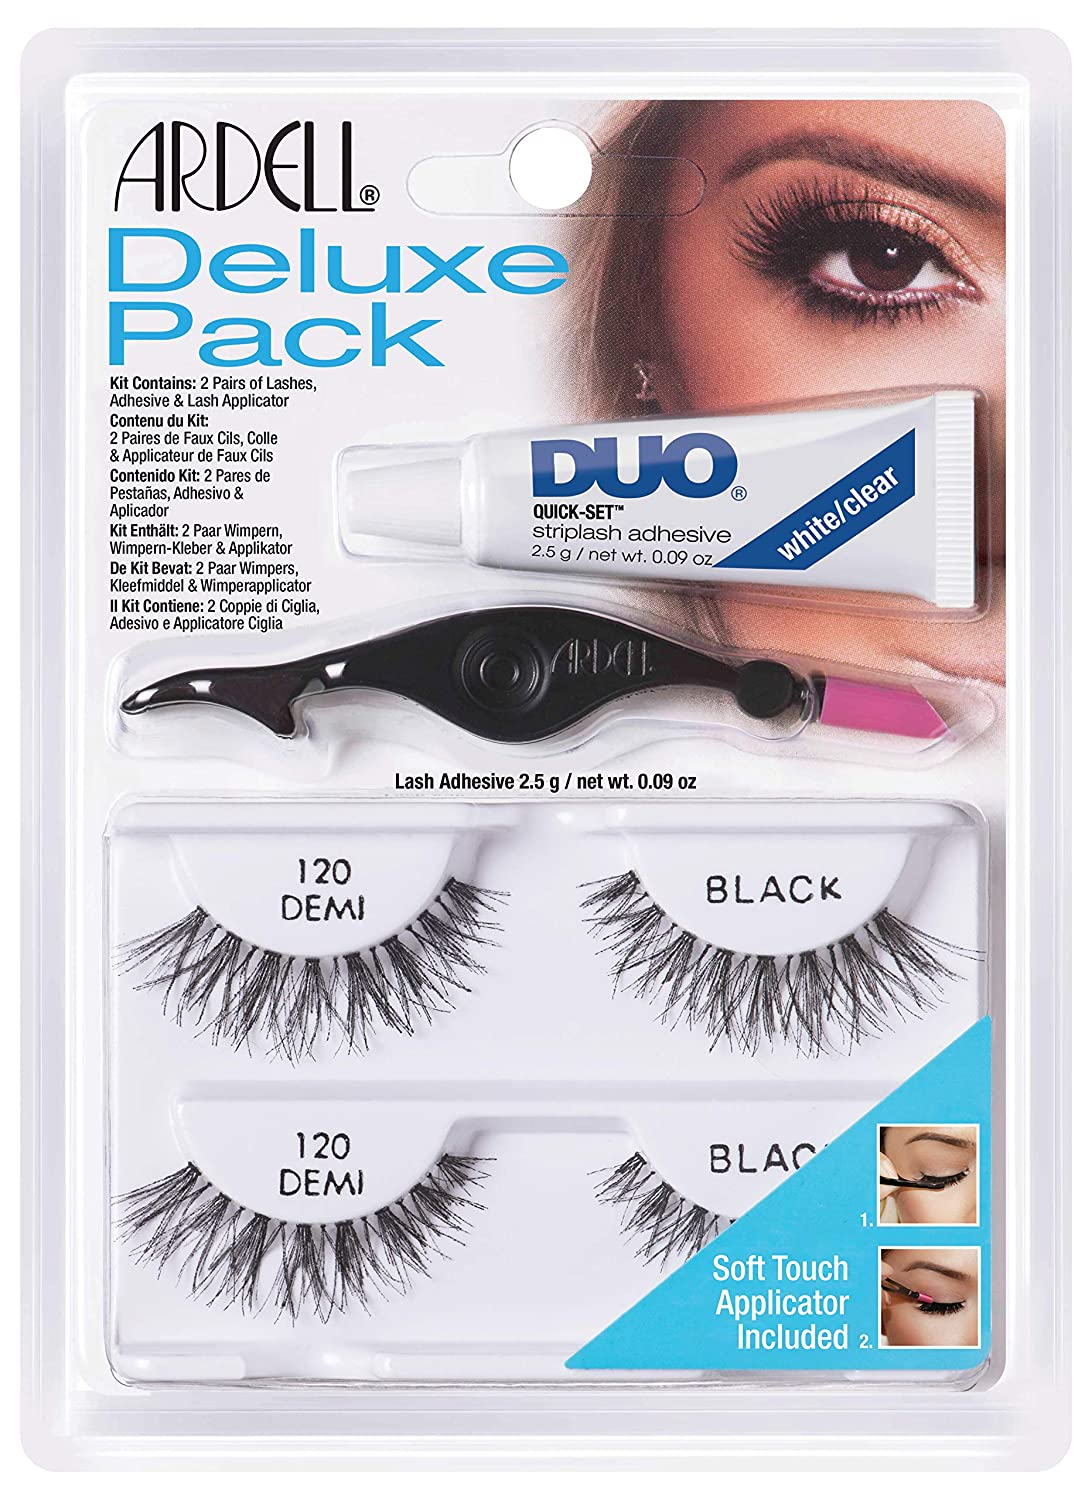 Ardell 30 x Pairs of Real Hair Eyelashes with Duo Eyelash Glue and Easy  Applicator for Attaching False Eyelashes, Deluxe Pack for Perfect  Eyelashes, 306 ...